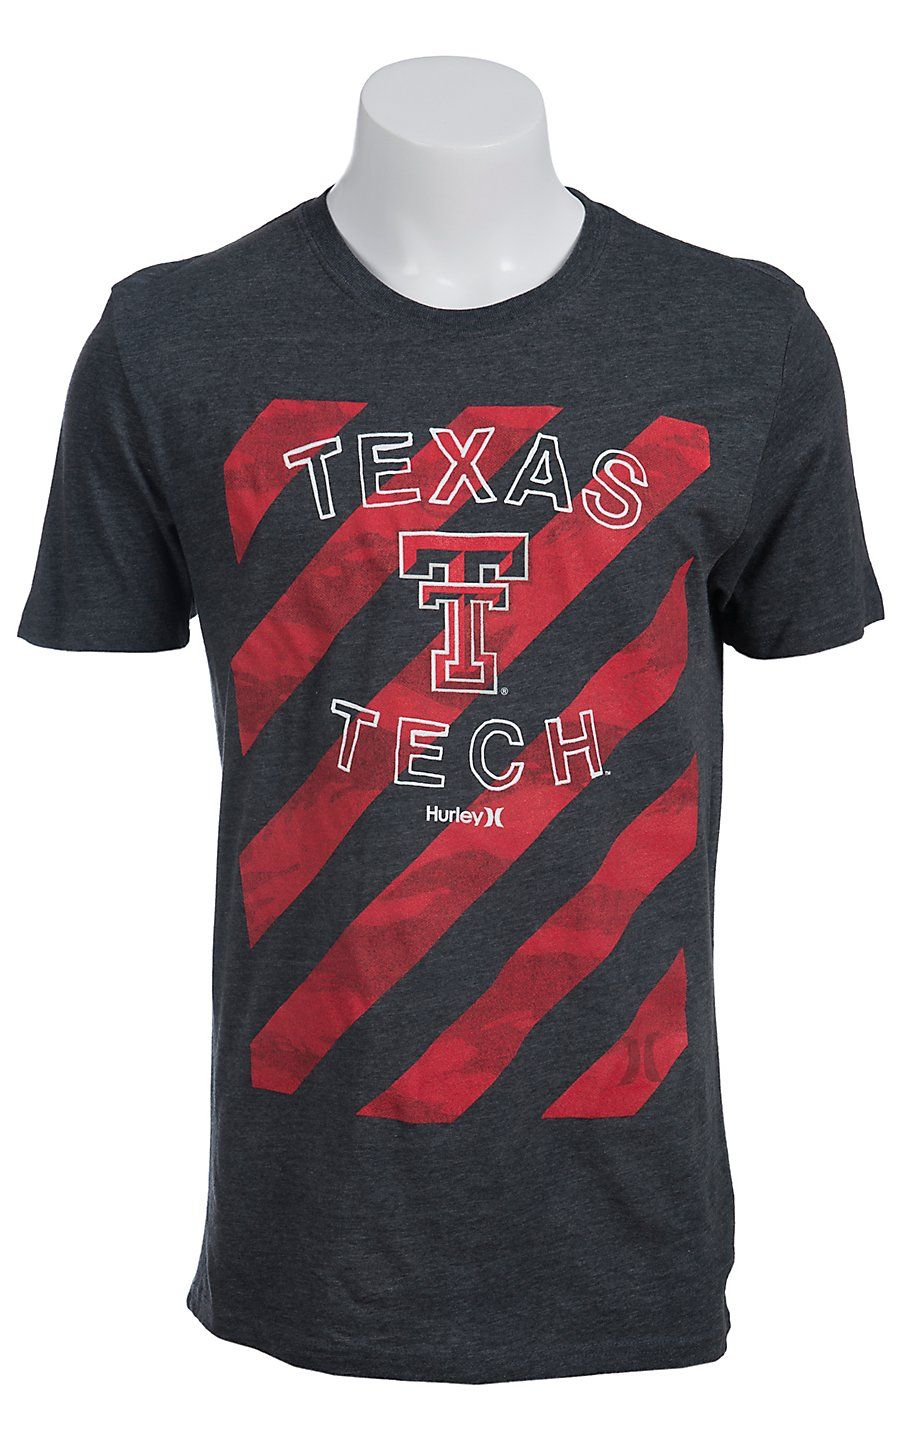 b1a6c7c4 Hurley® Men's Charcoal Grey with Red Stripes Texas Tech Short Sleeve Tee